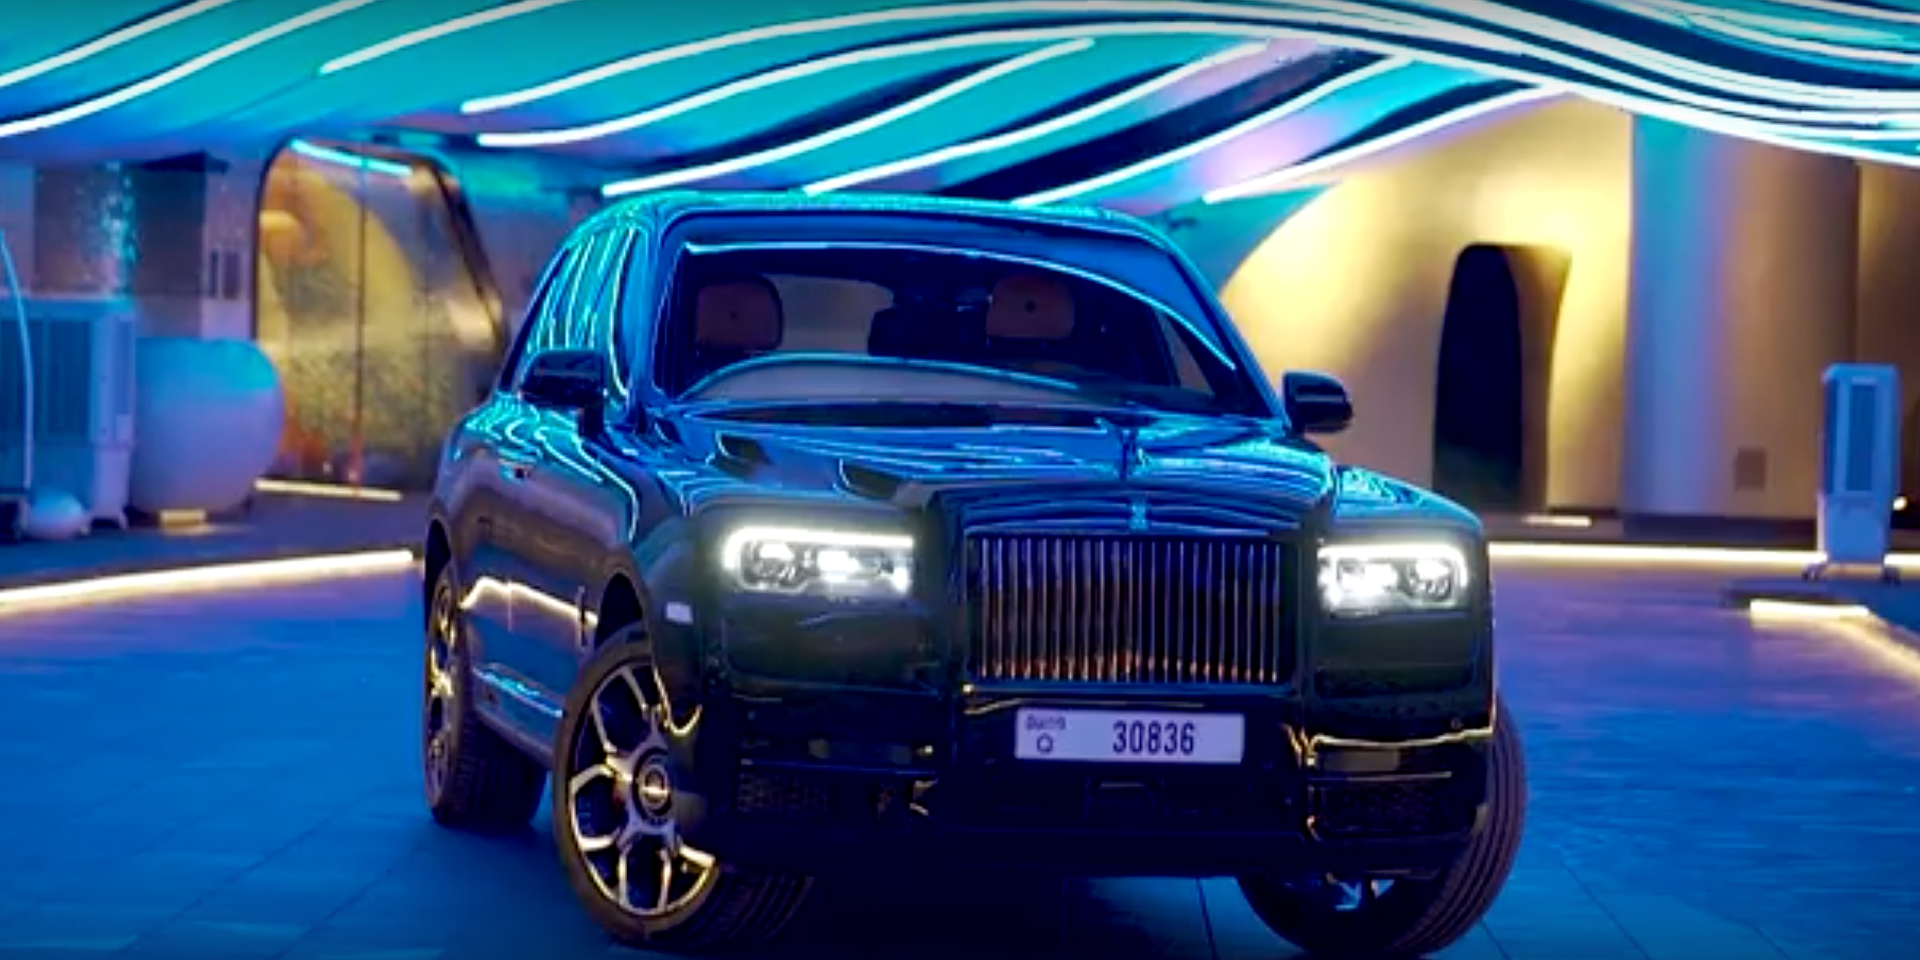 Black Badge Cullinan Dubai rolls royce